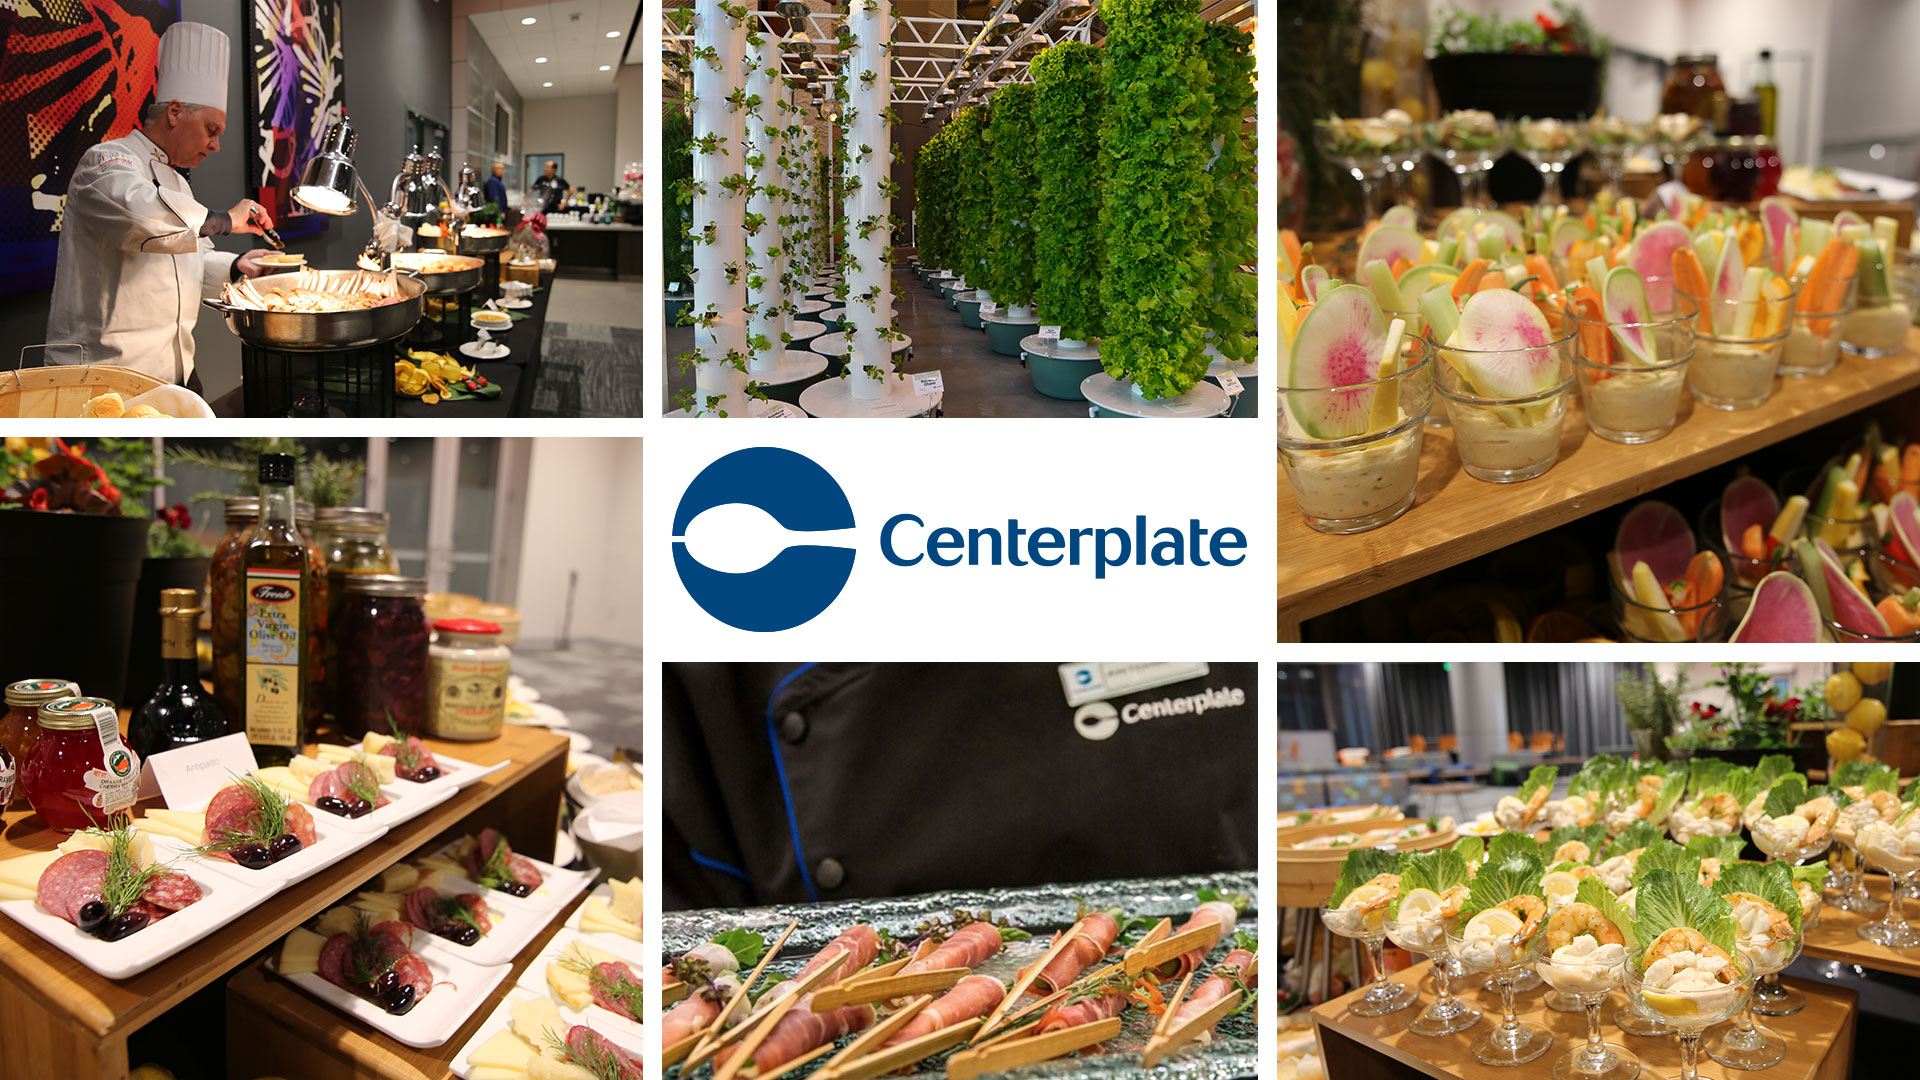 Orange County, Fla. renews Food and Beverage partnership with Centerplate at Orange County Convention Center